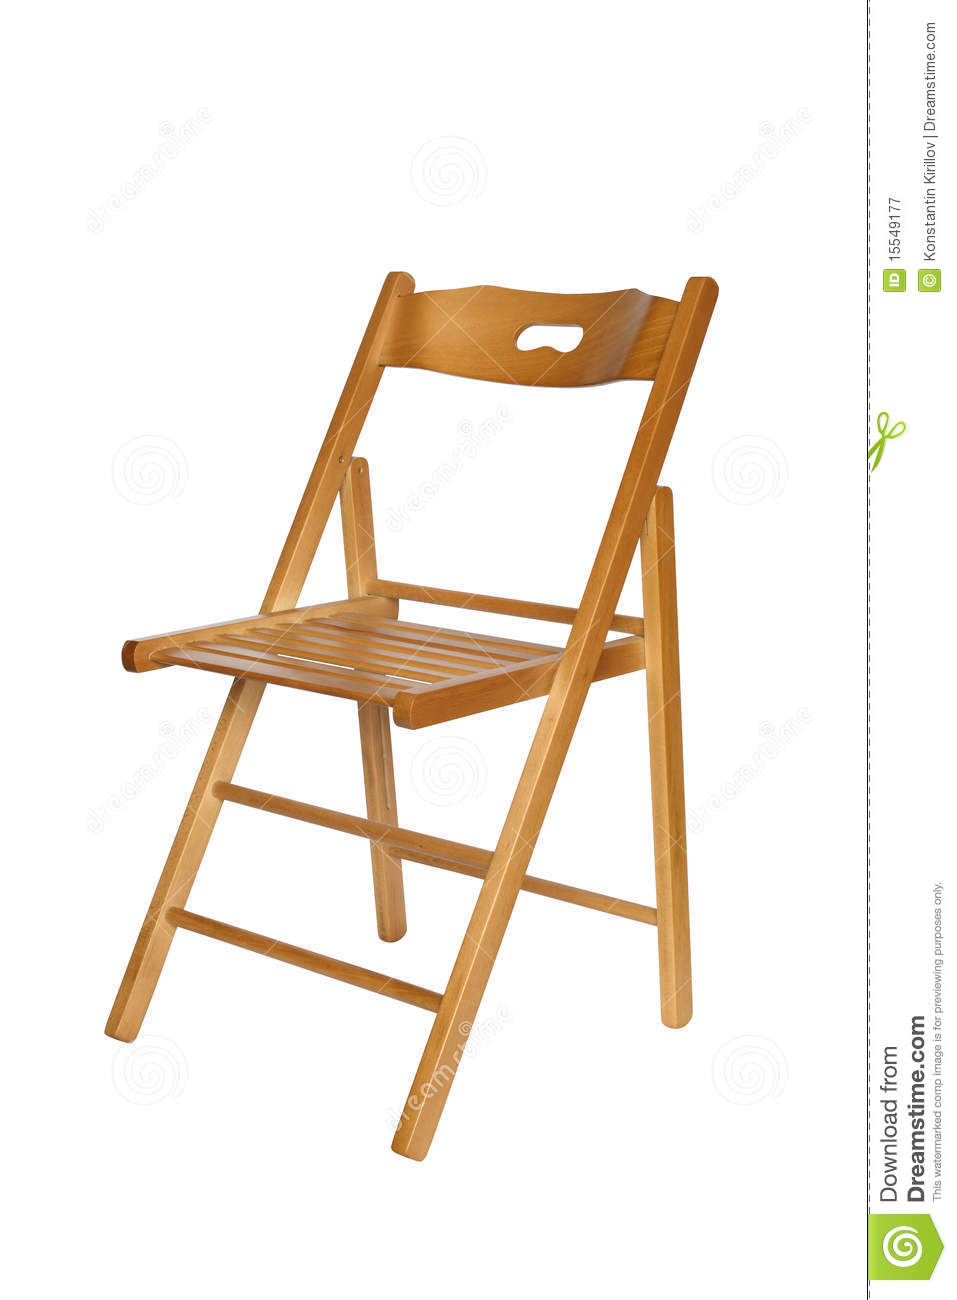 Folding Chair Royalty Free Stock Photography Image 15549177